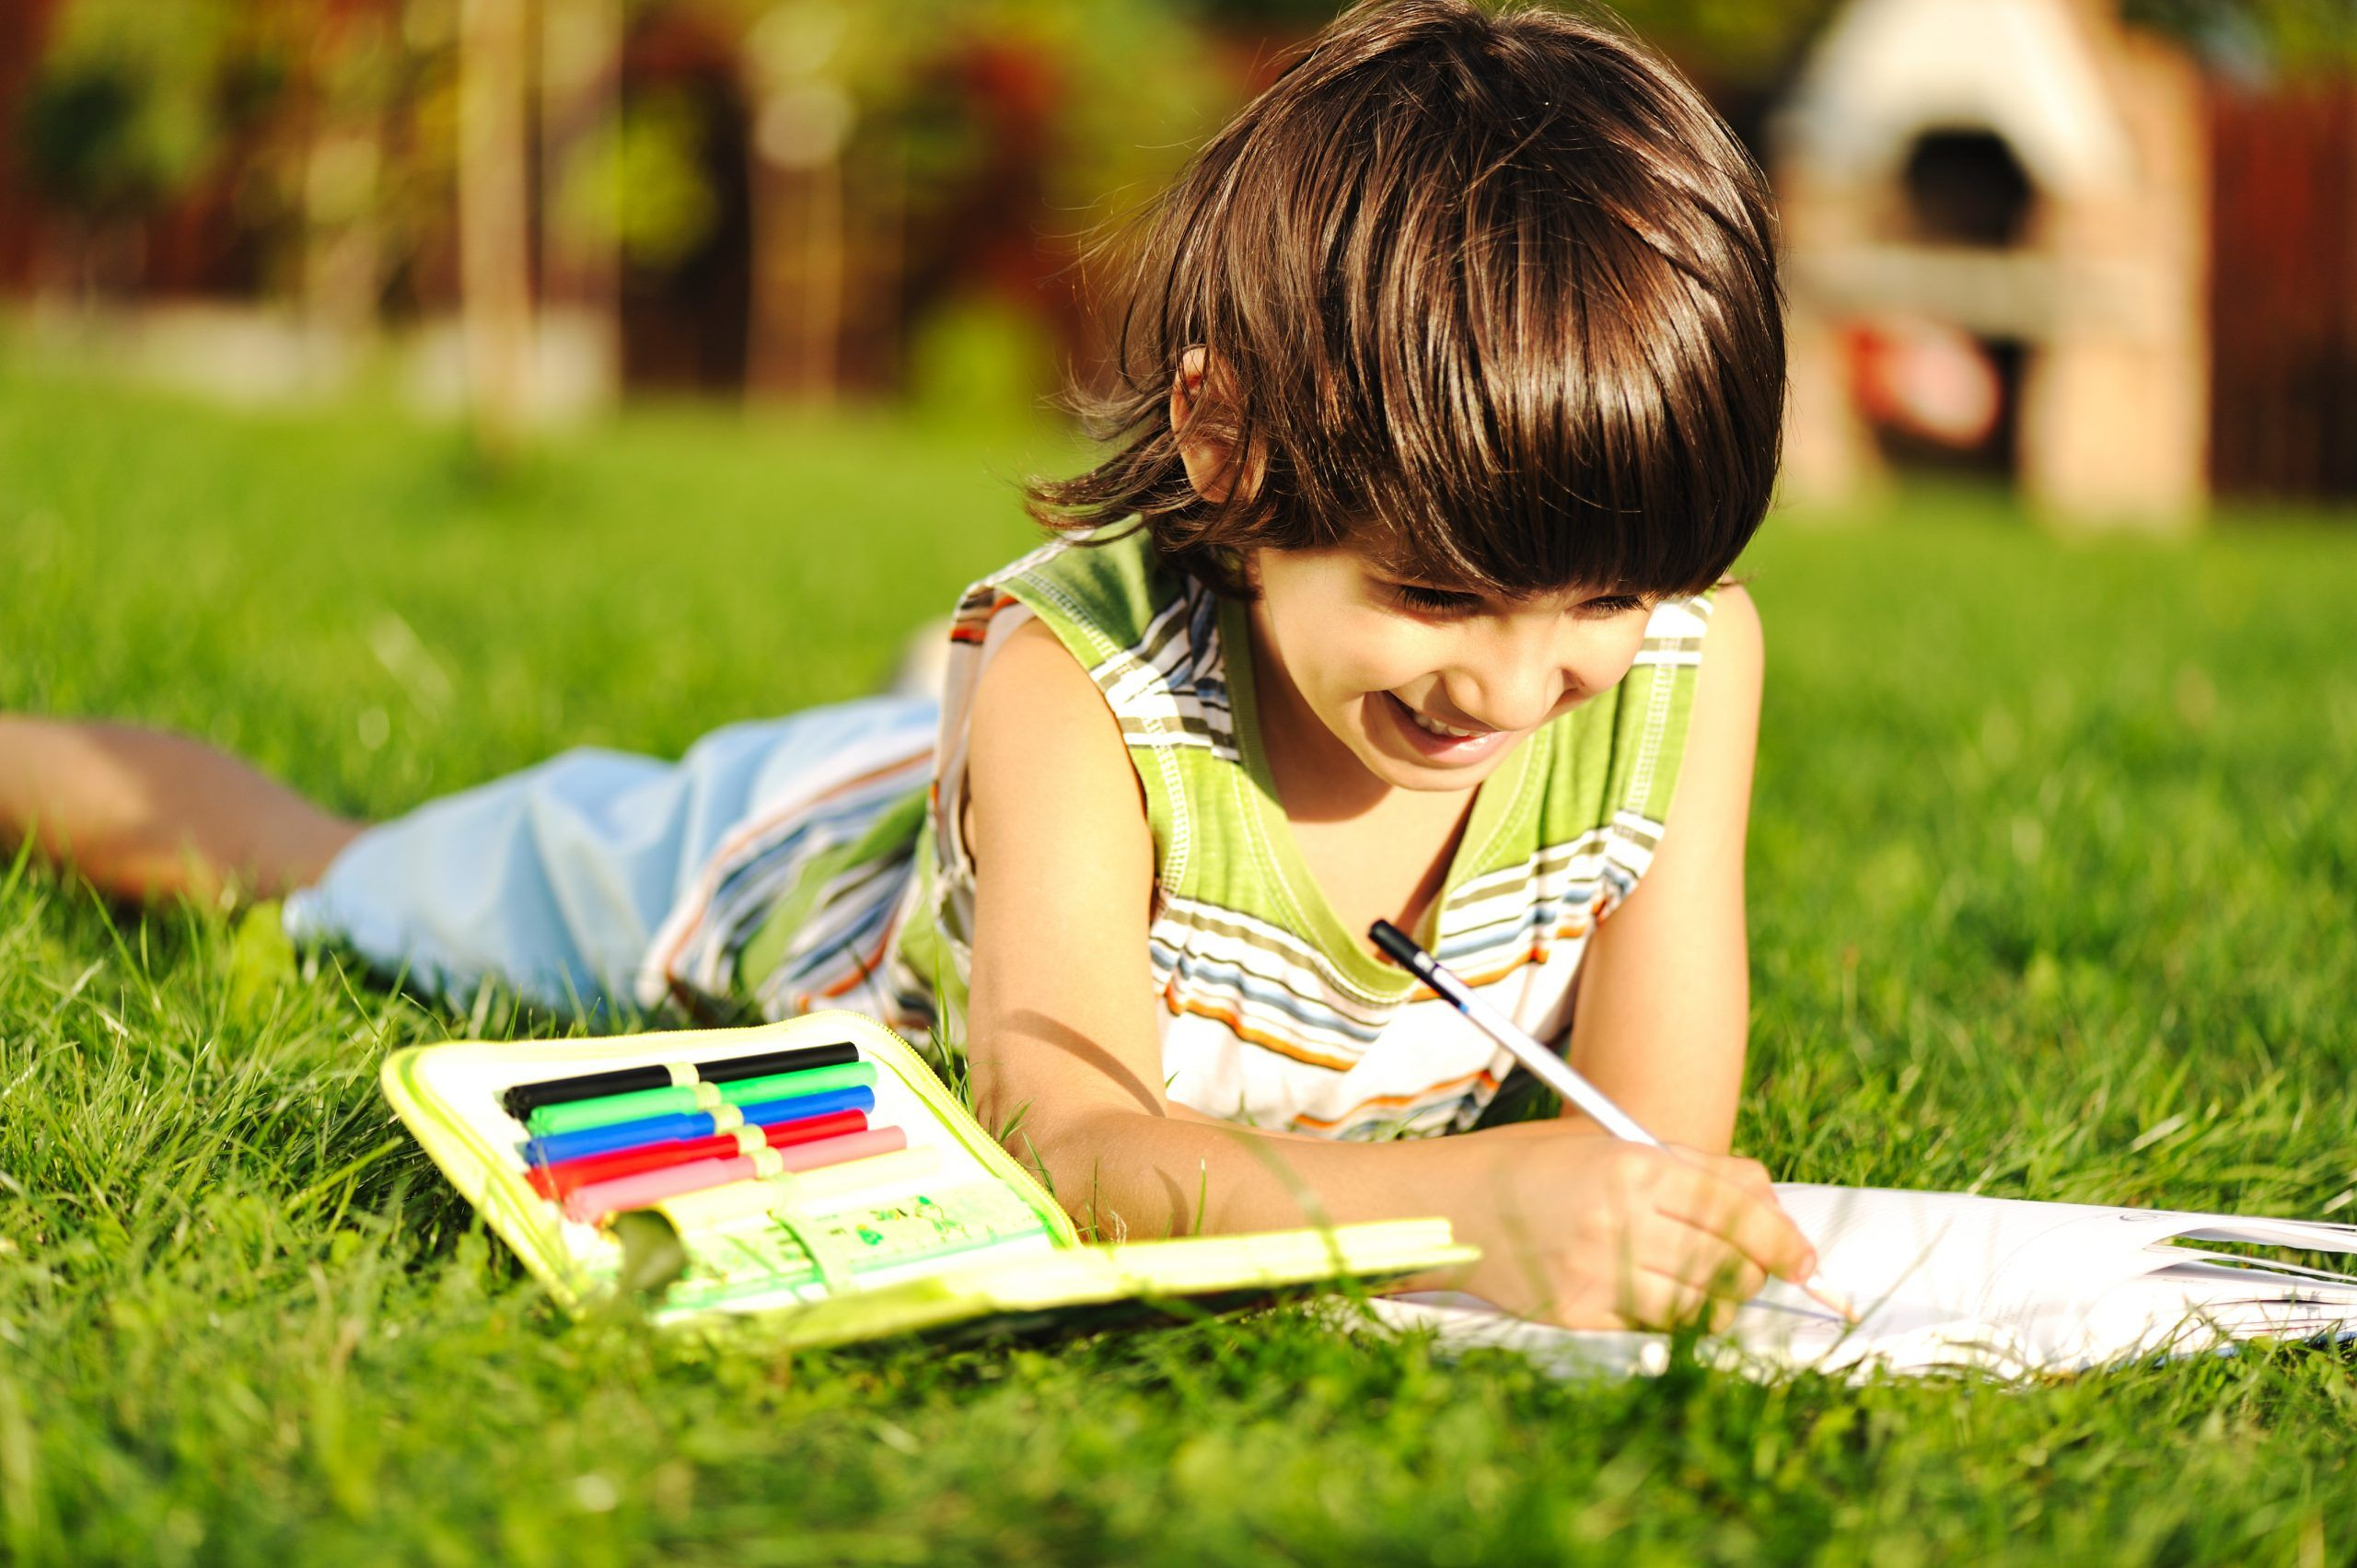 Young,Boy,Outdoors,On,The,Grass,Reading,A,Book,,Writting